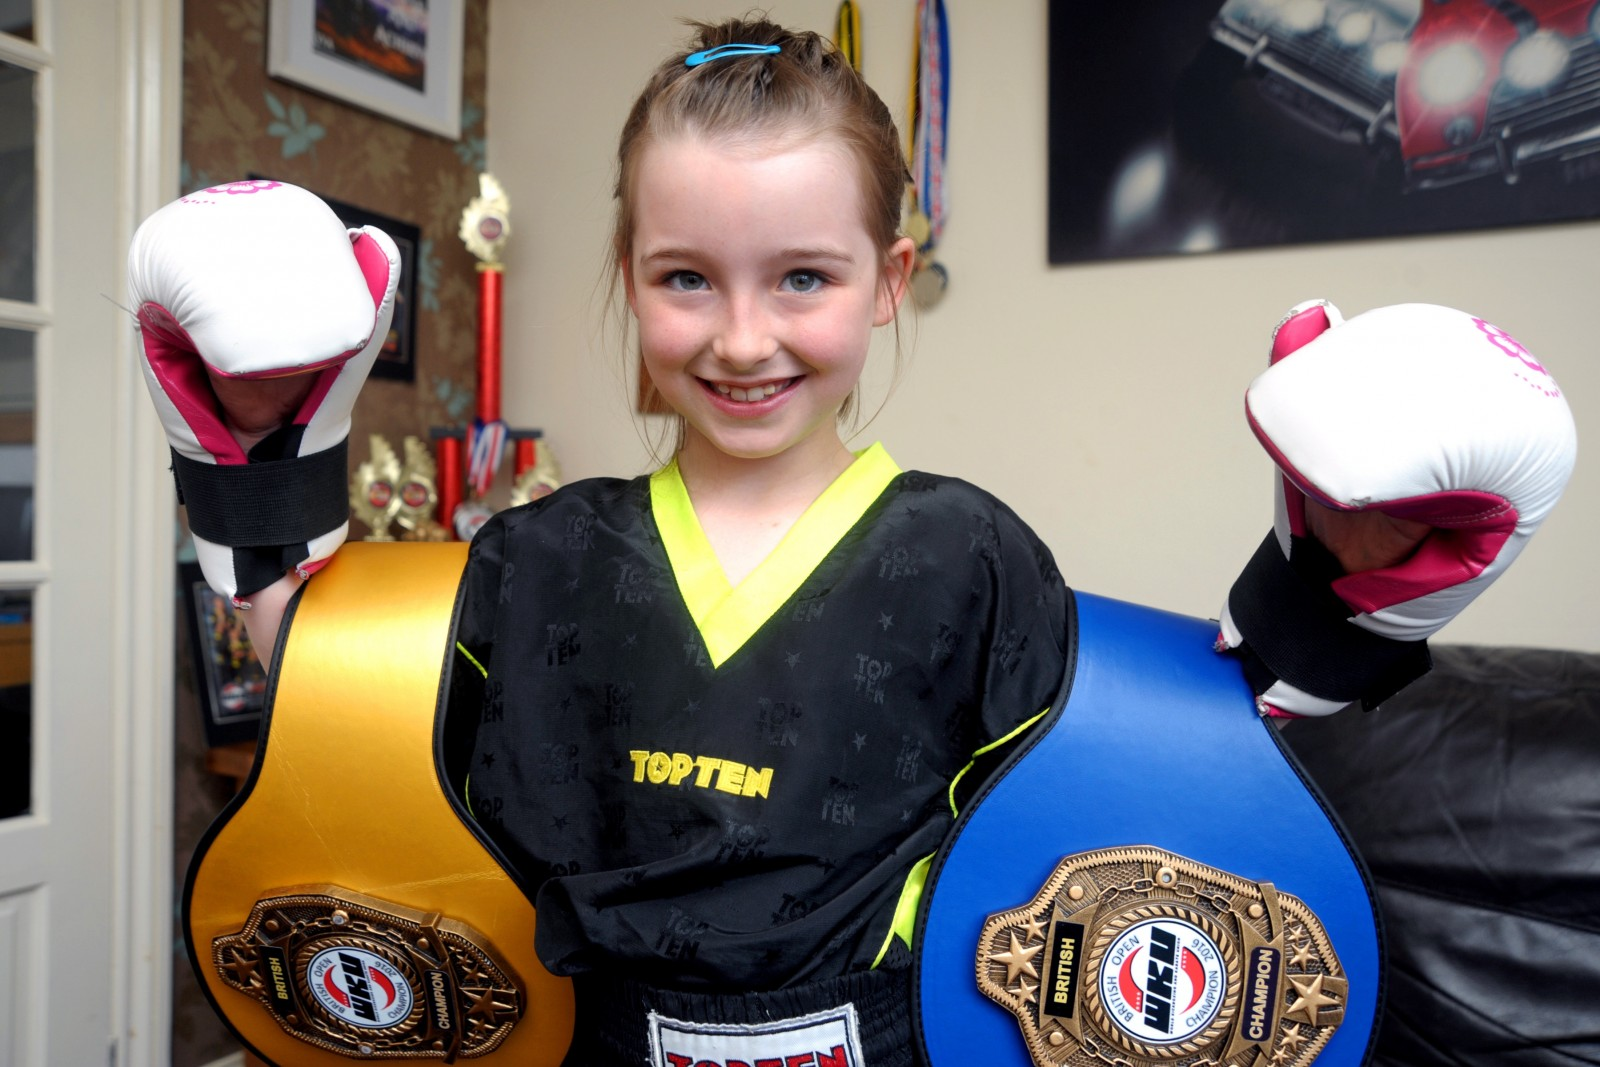 Eight year old girl who took up kickboxing to beat bullies now British champ